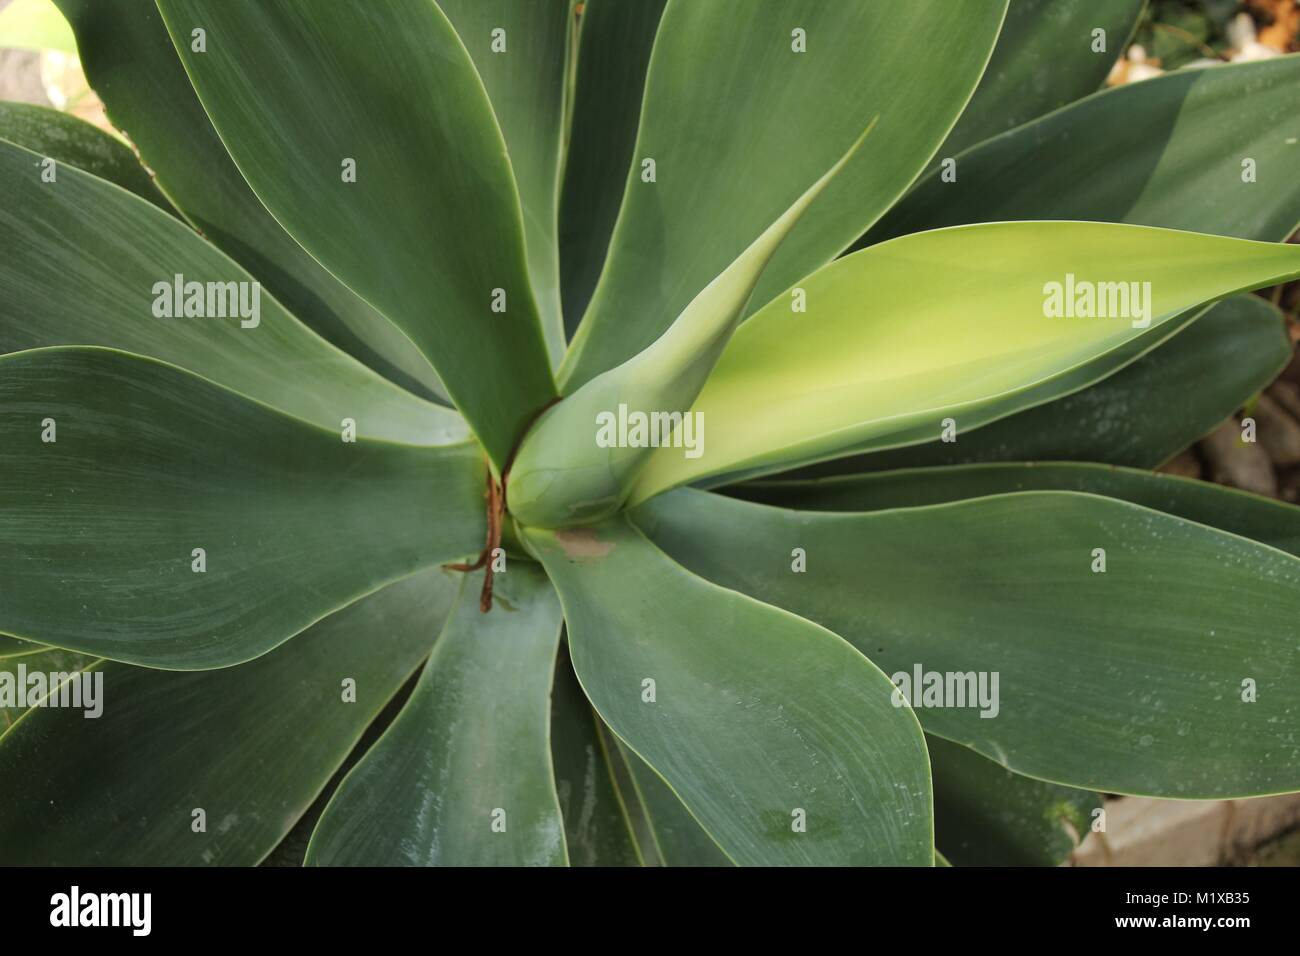 agave attenuata in flower stockfotos agave attenuata in flower bilder alamy. Black Bedroom Furniture Sets. Home Design Ideas